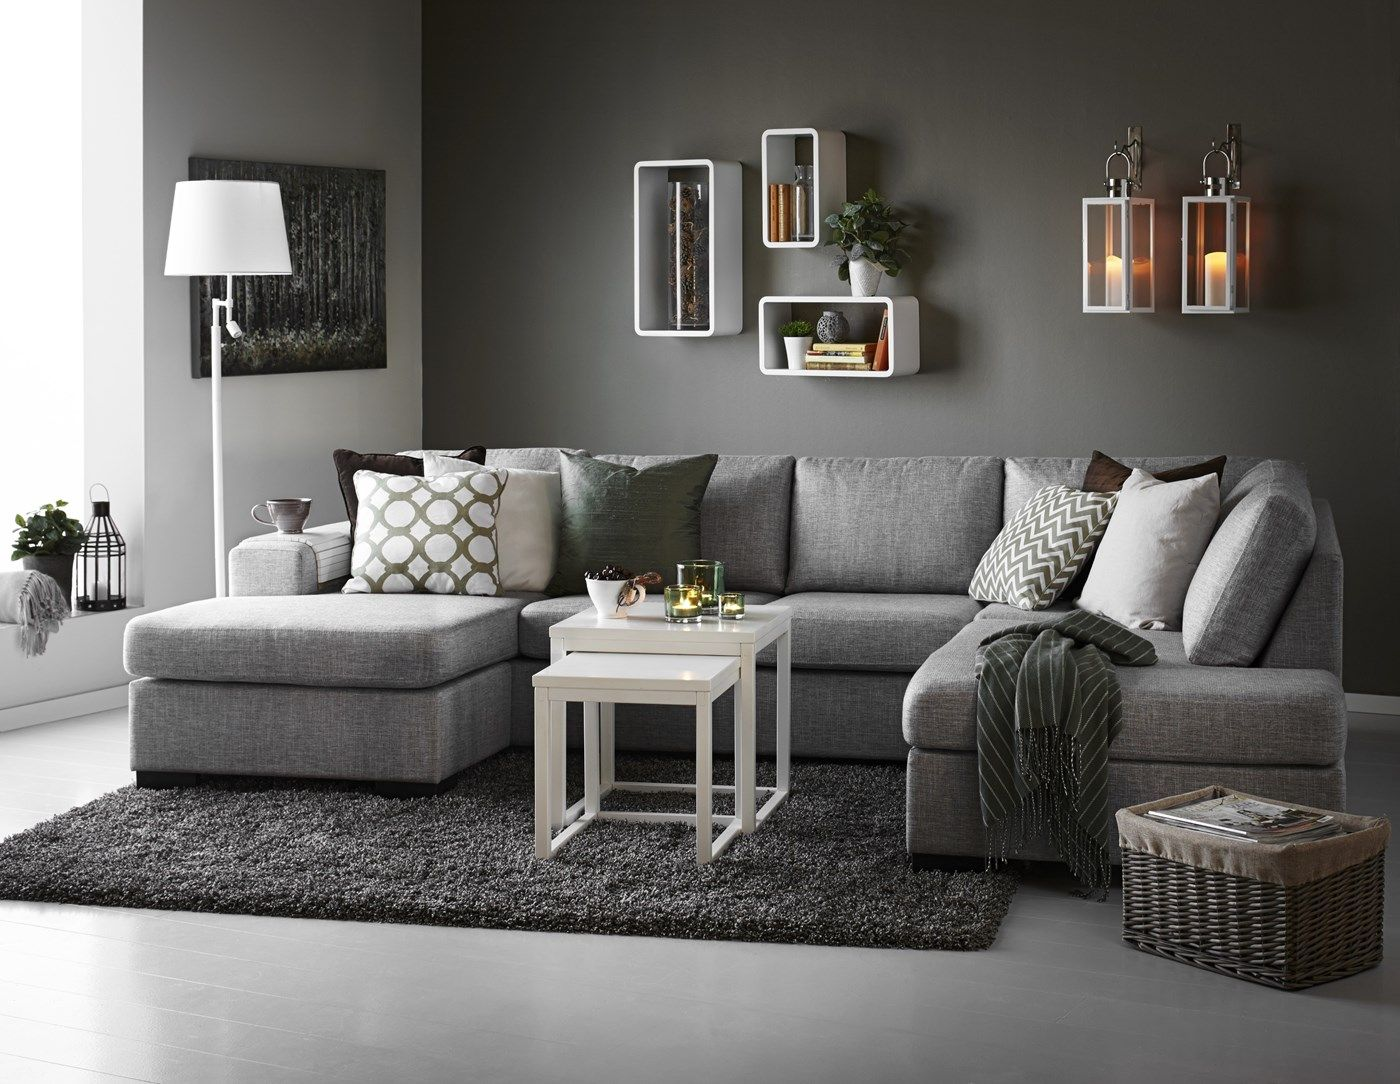 Nevada 3 Sits Soffa Med Divan Och Schaslong Mio Grey Sofa Living Room Living Room Color Elegant Living Room